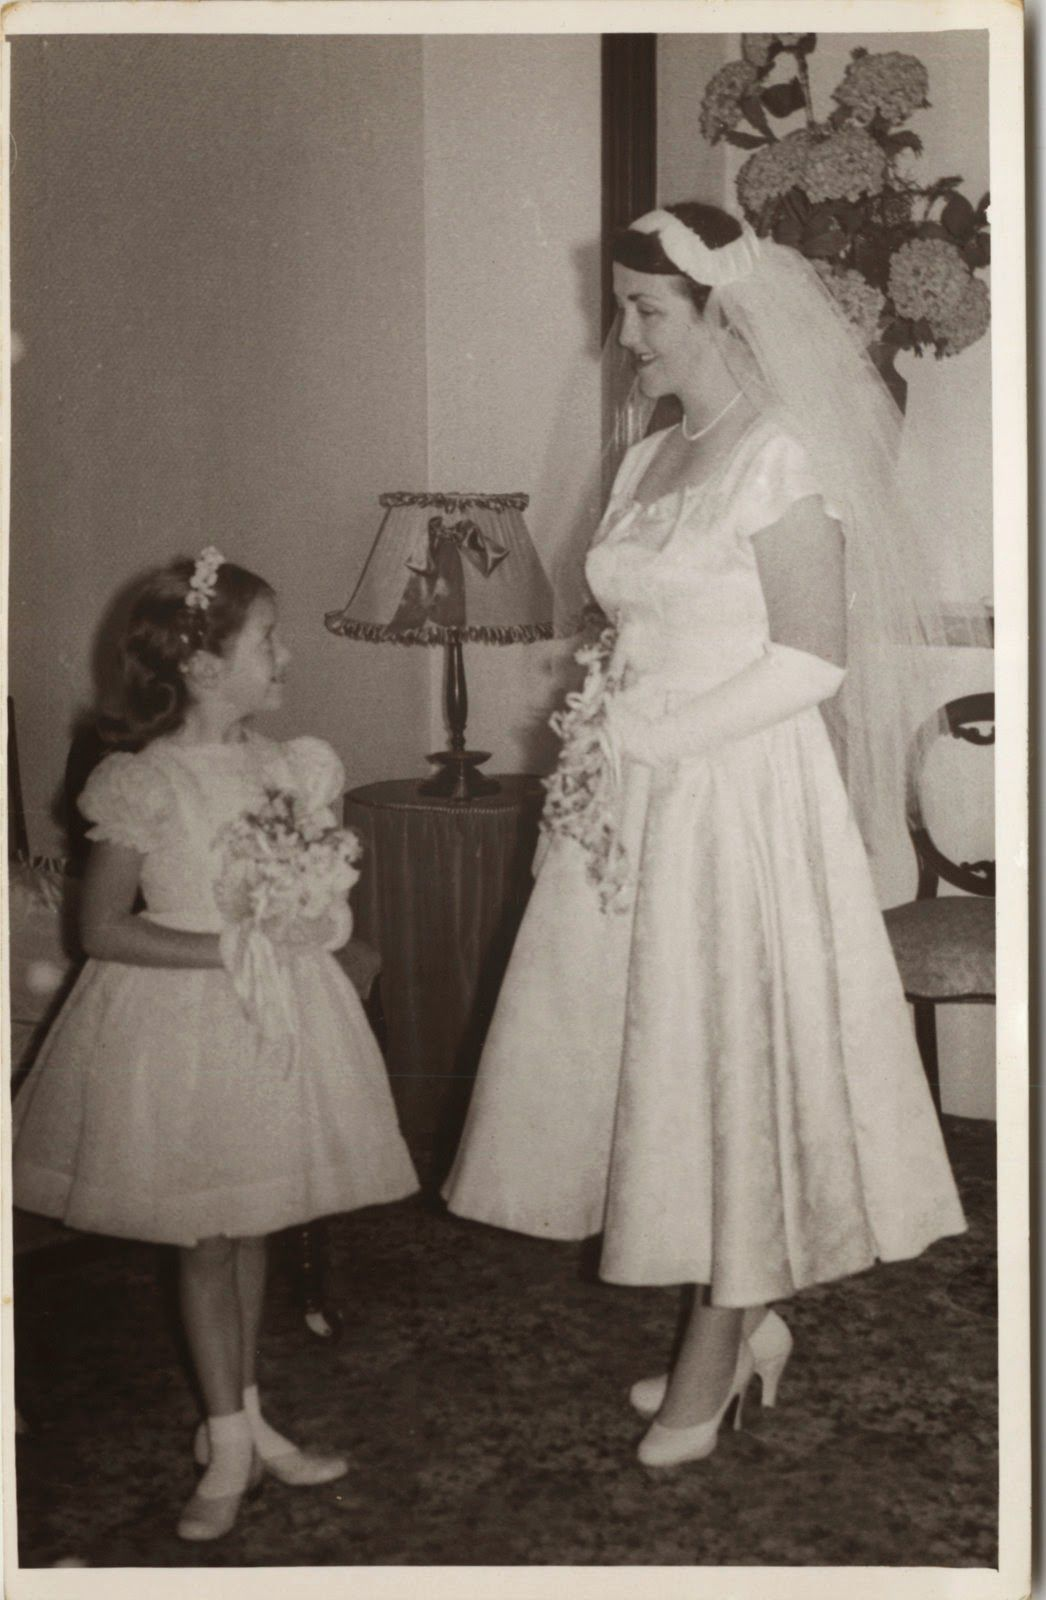 Aunty Mary and I on her wedding day 1957